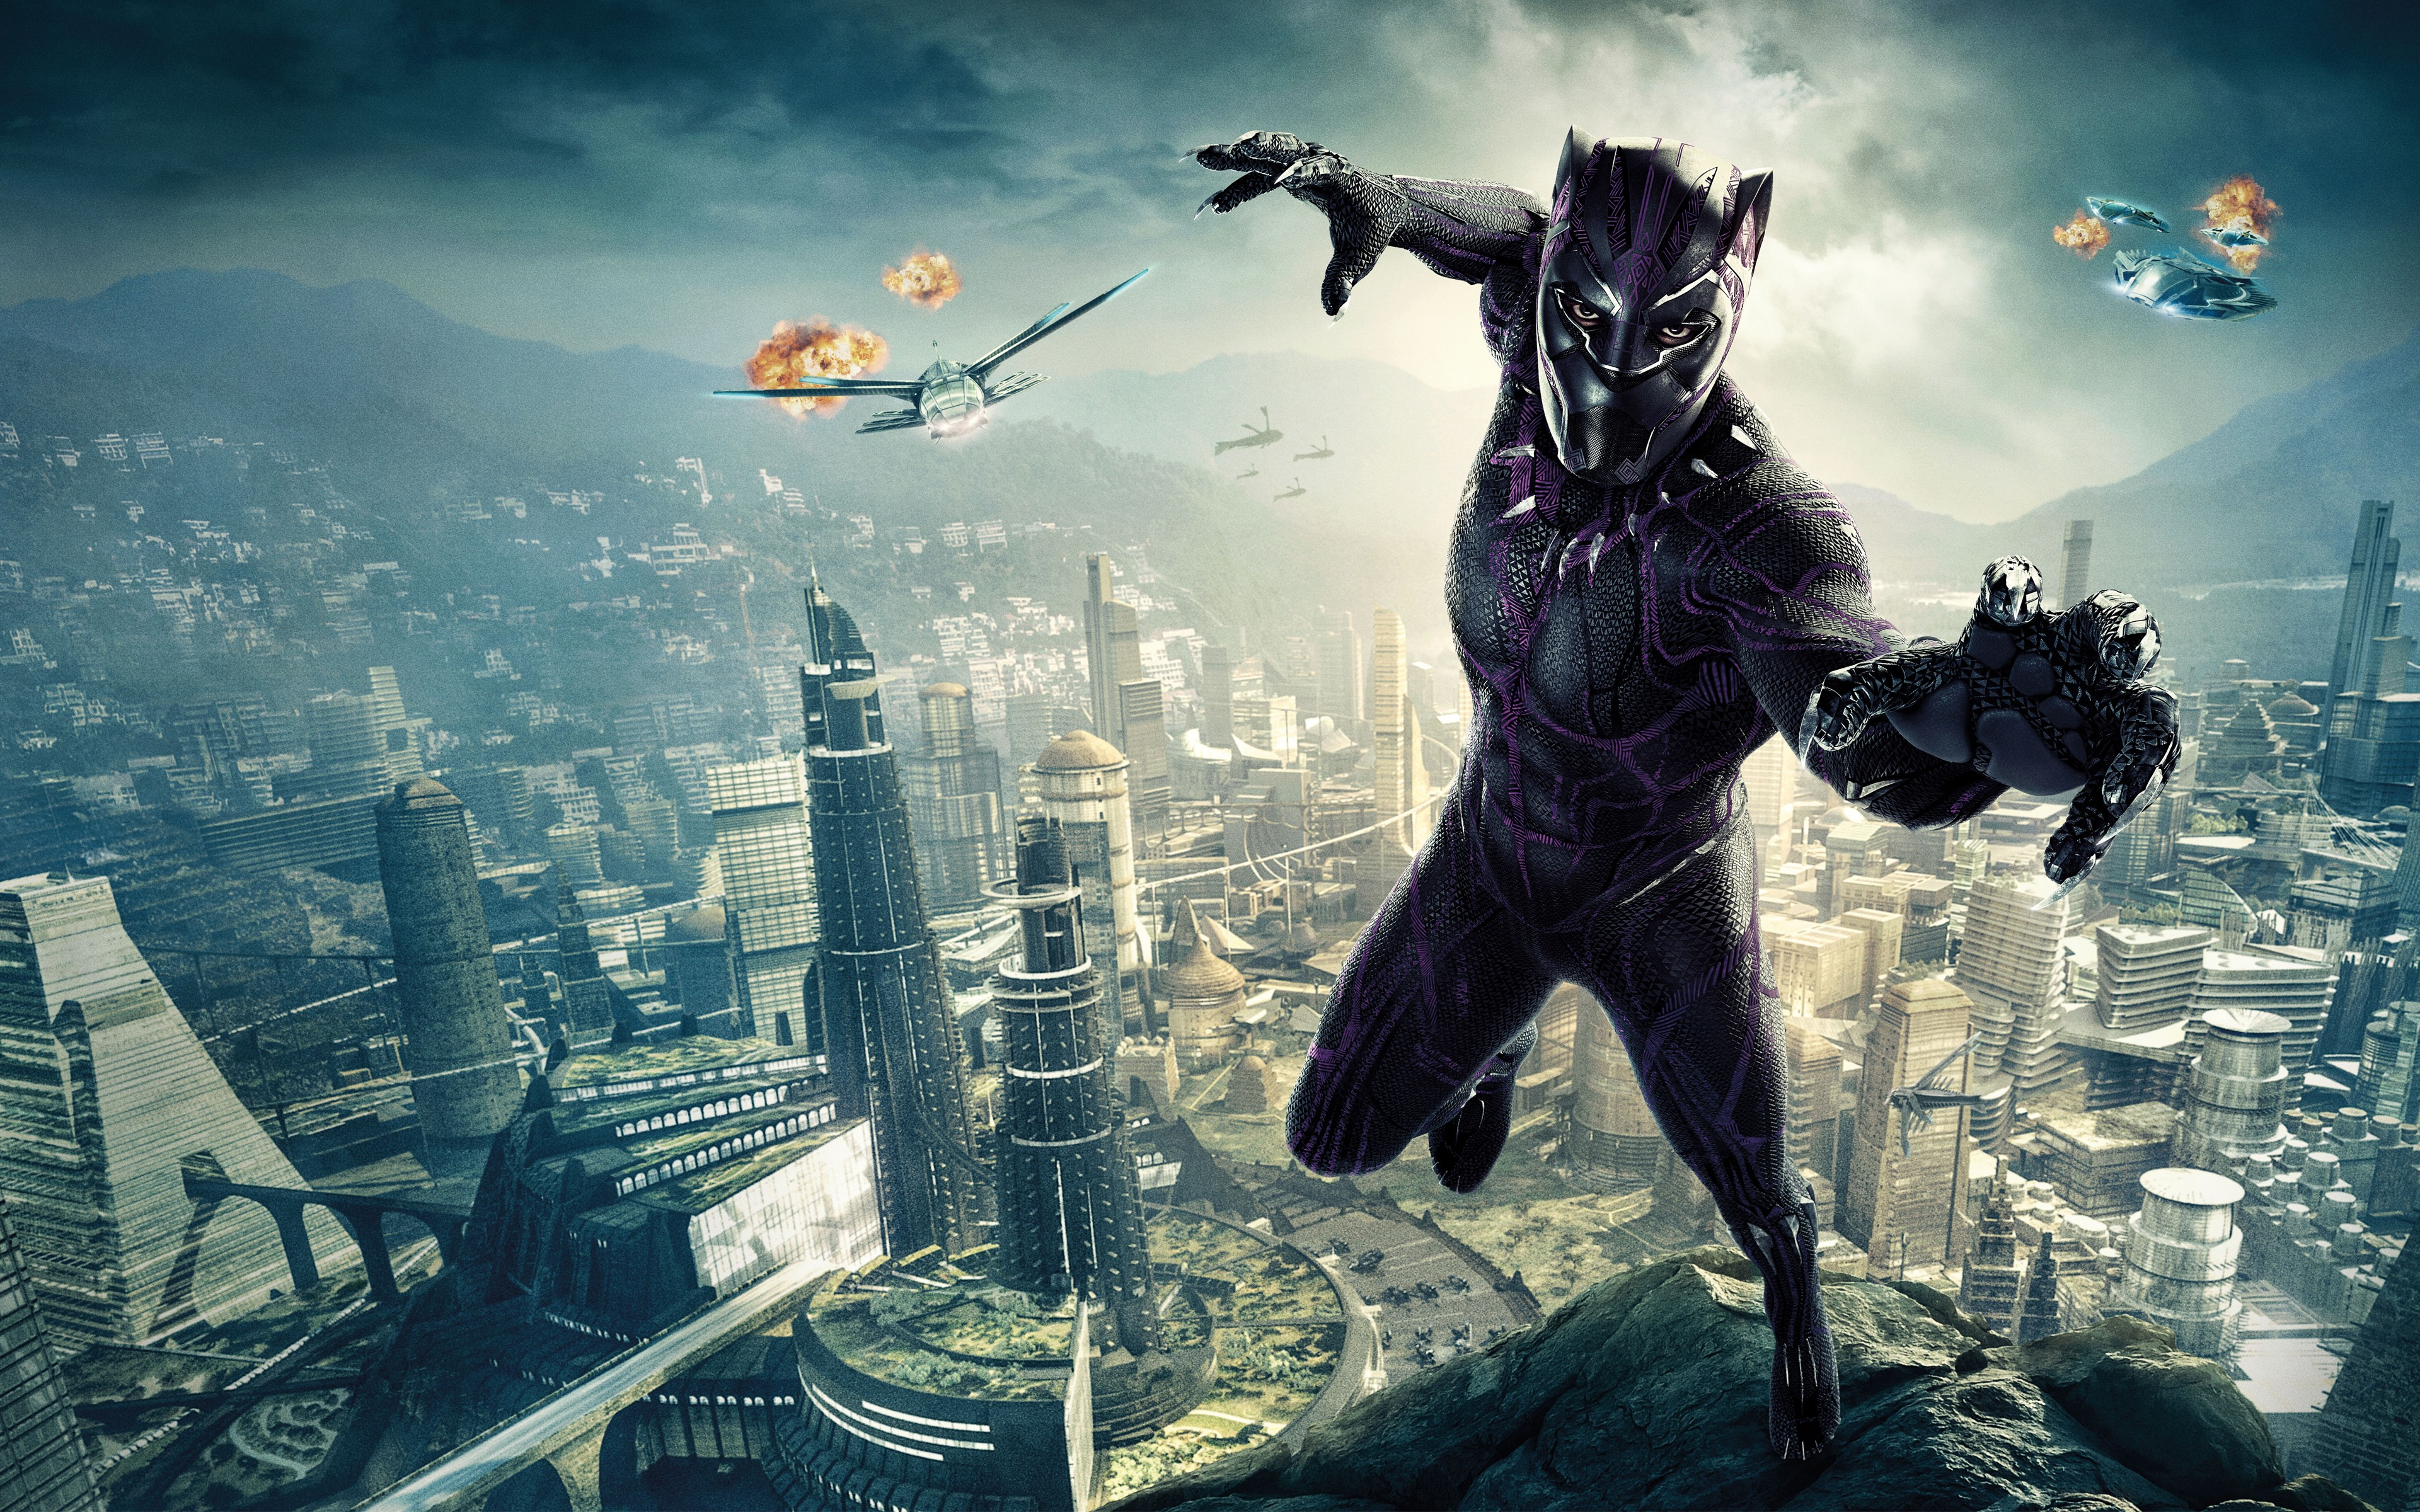 Black Wallpaper For Iphone 7 Black Panther 4k 8k Wallpapers Hd Wallpapers Id 22918